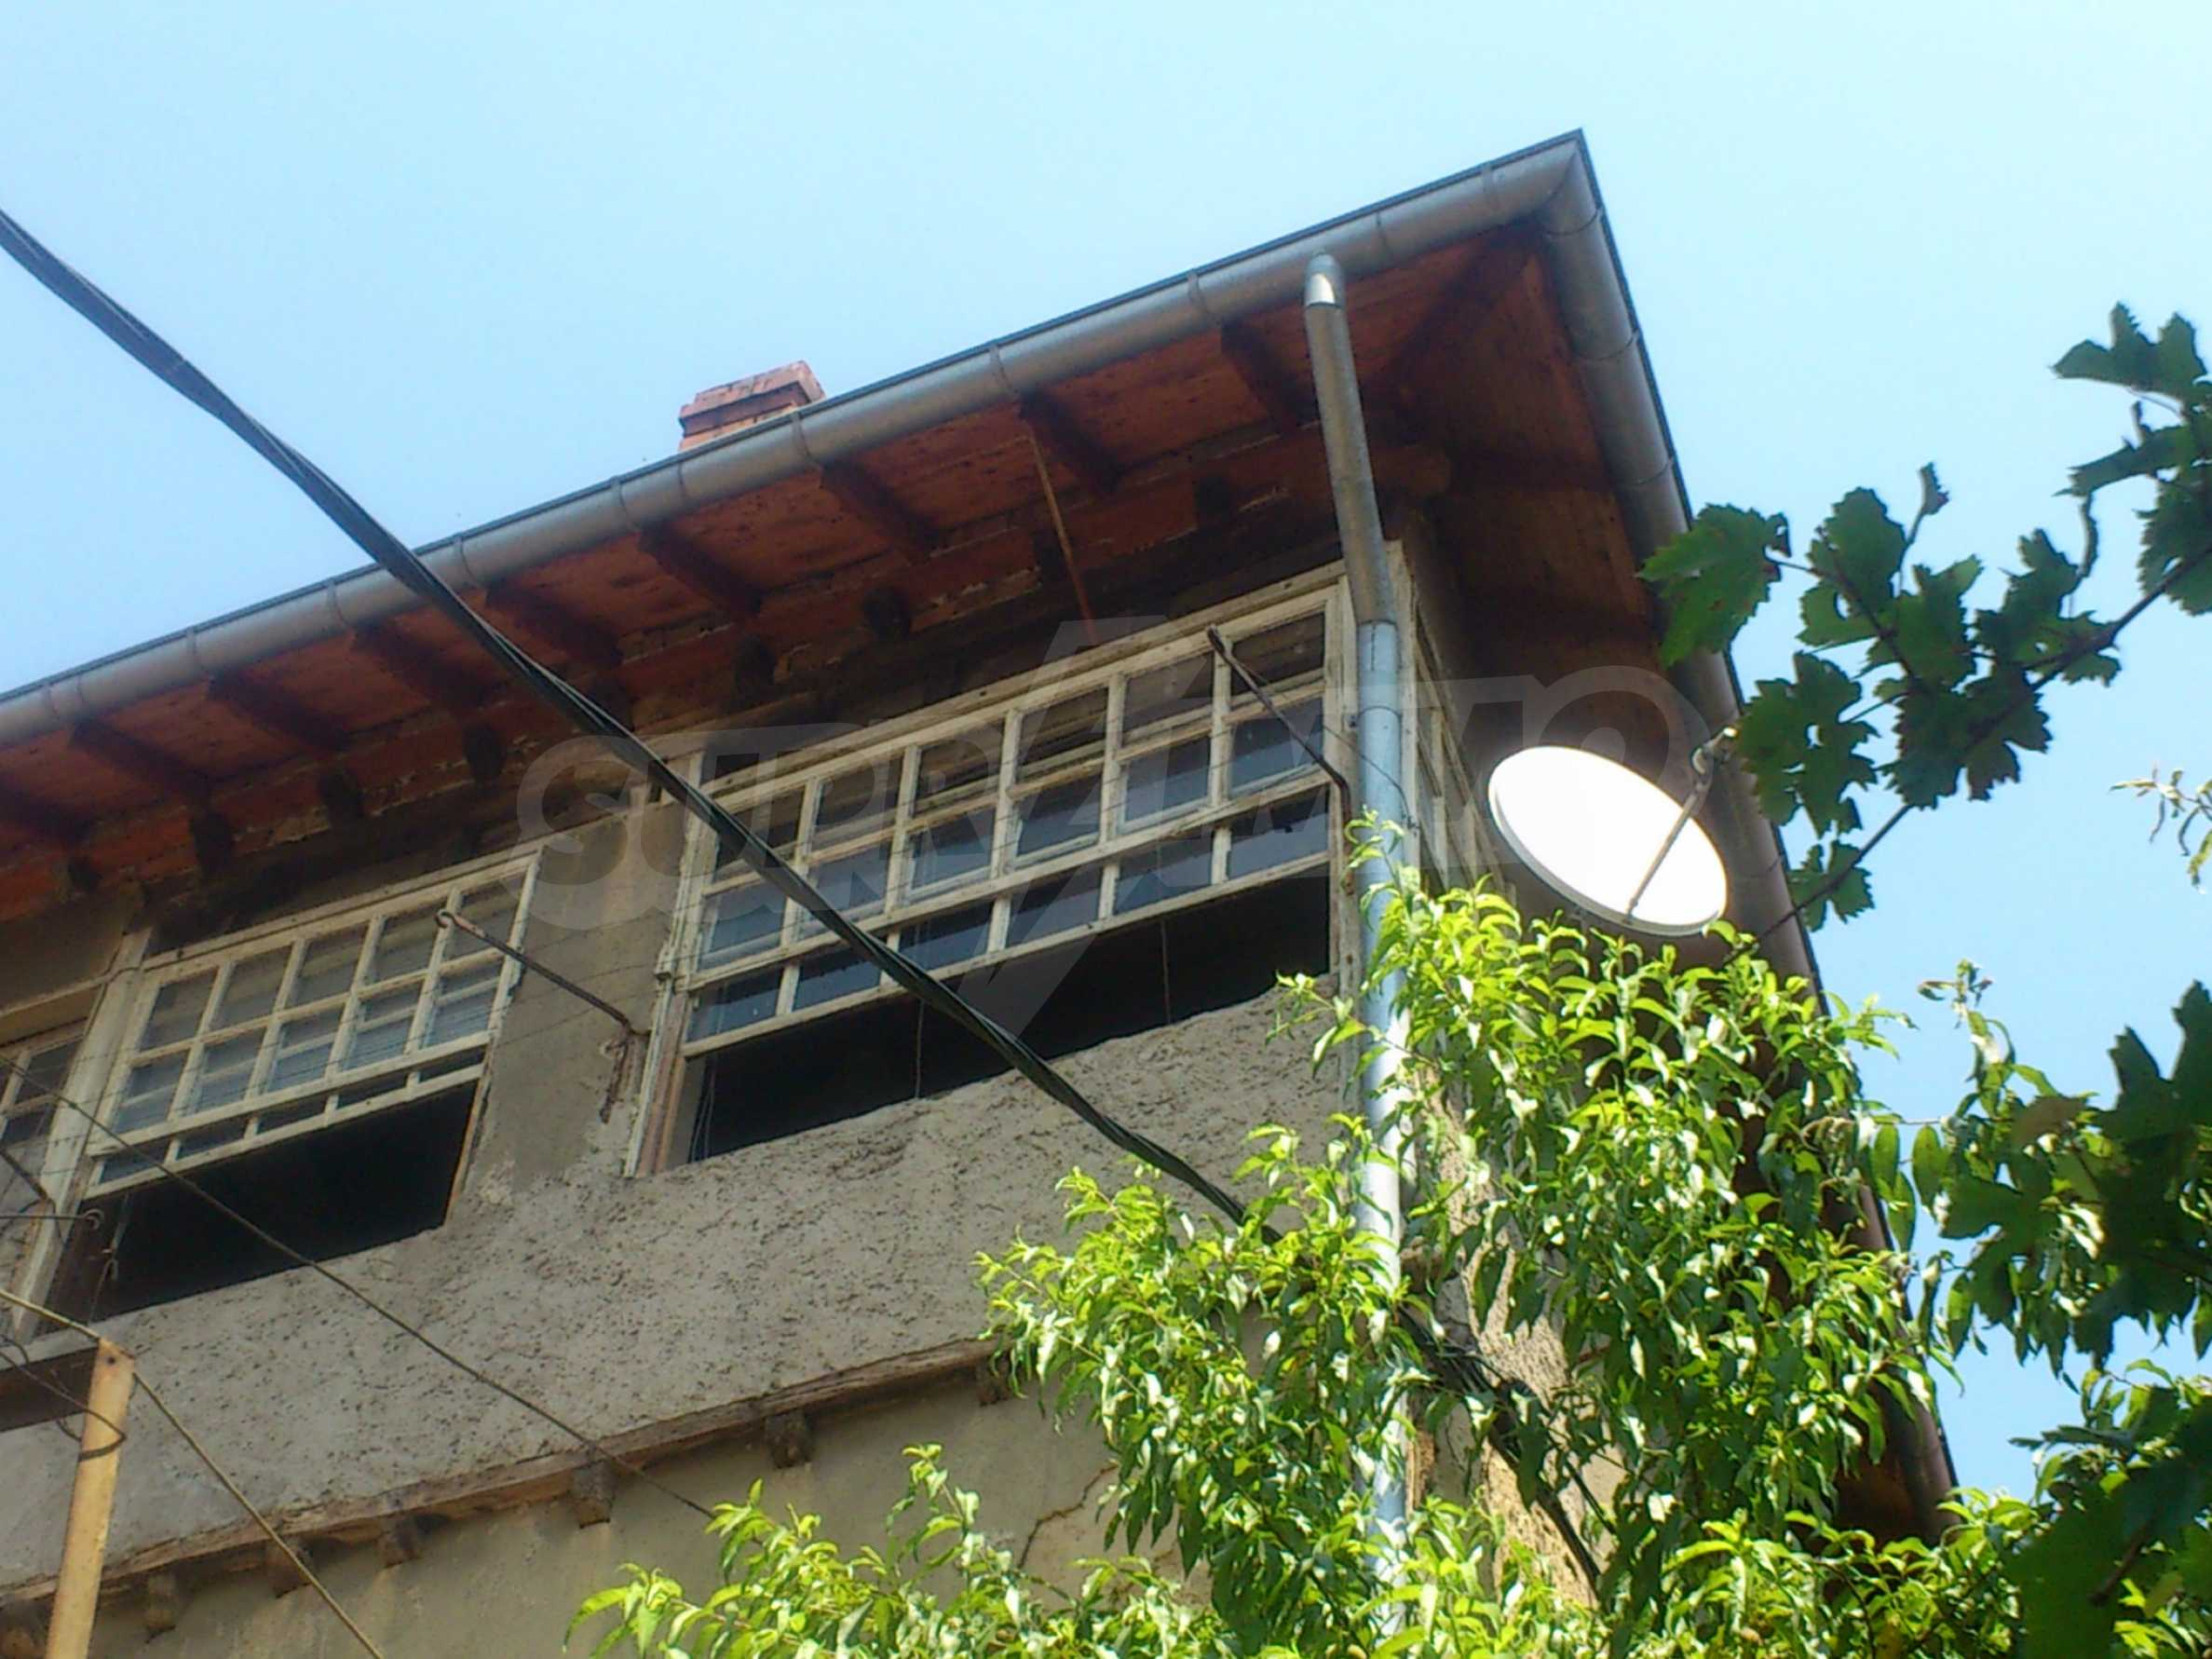 Traditional, spacious house located in the old part of Veliko Tarnovo 39